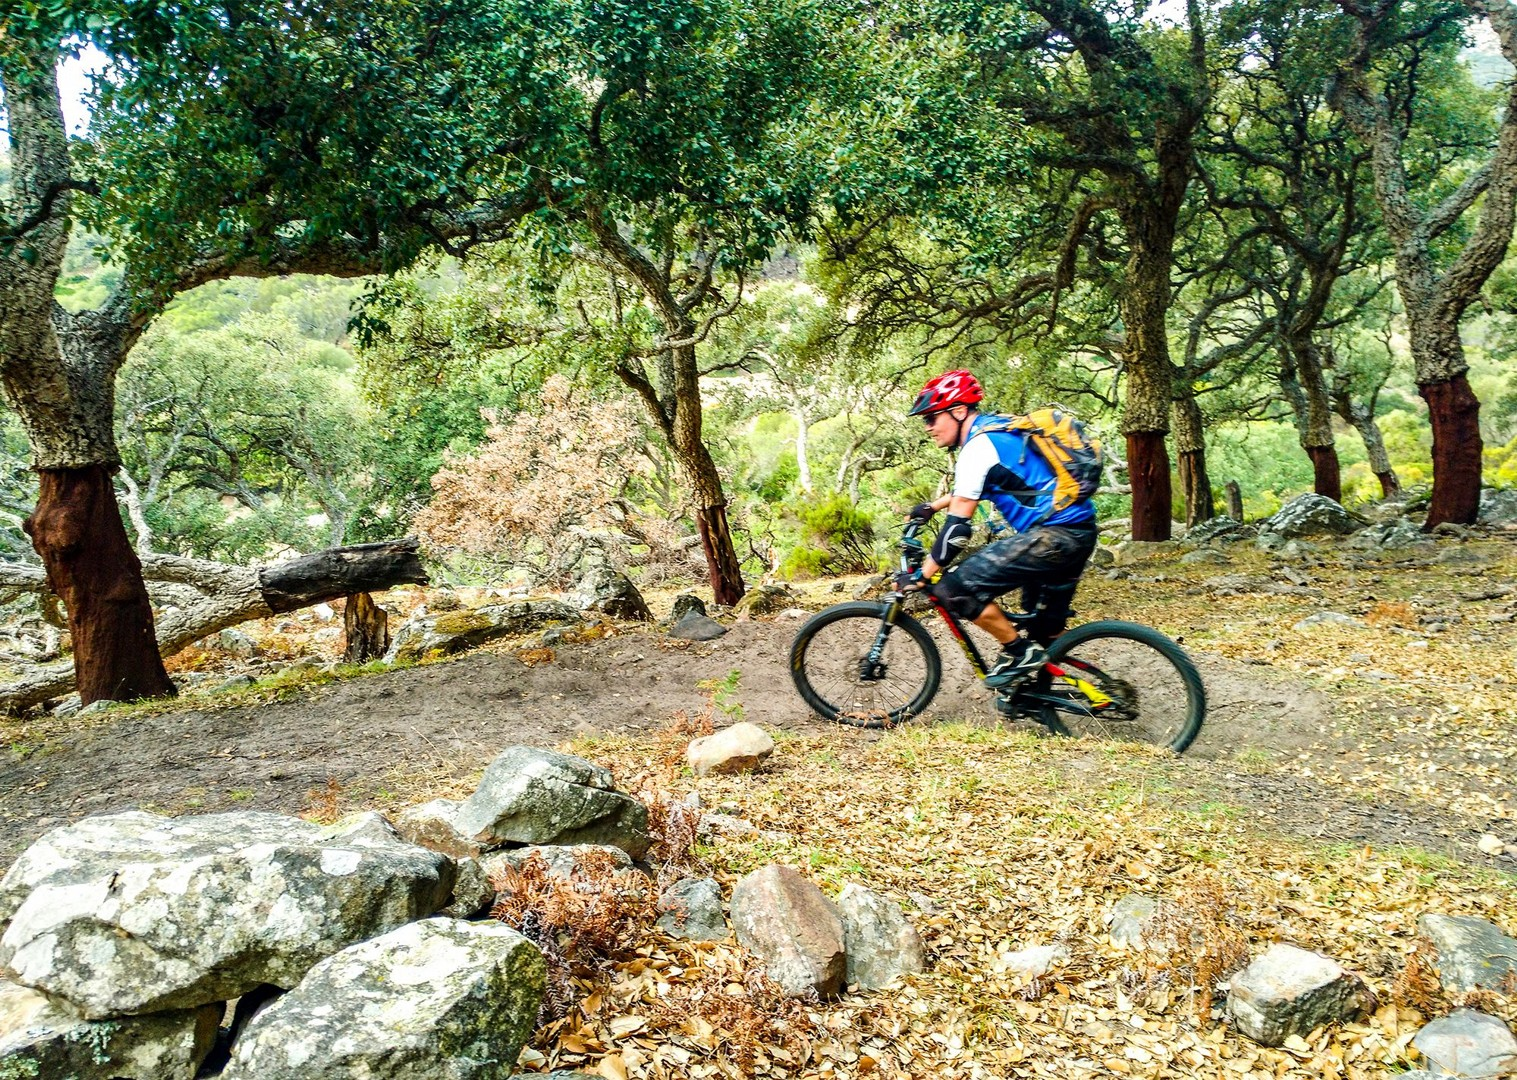 mountain-biking-in-spain-holiday-trans-andaluz-tour-saddle-skedaddle.jpg - Spain - Trans Andaluz - Guided Mountain Bike Holiday - Mountain Biking